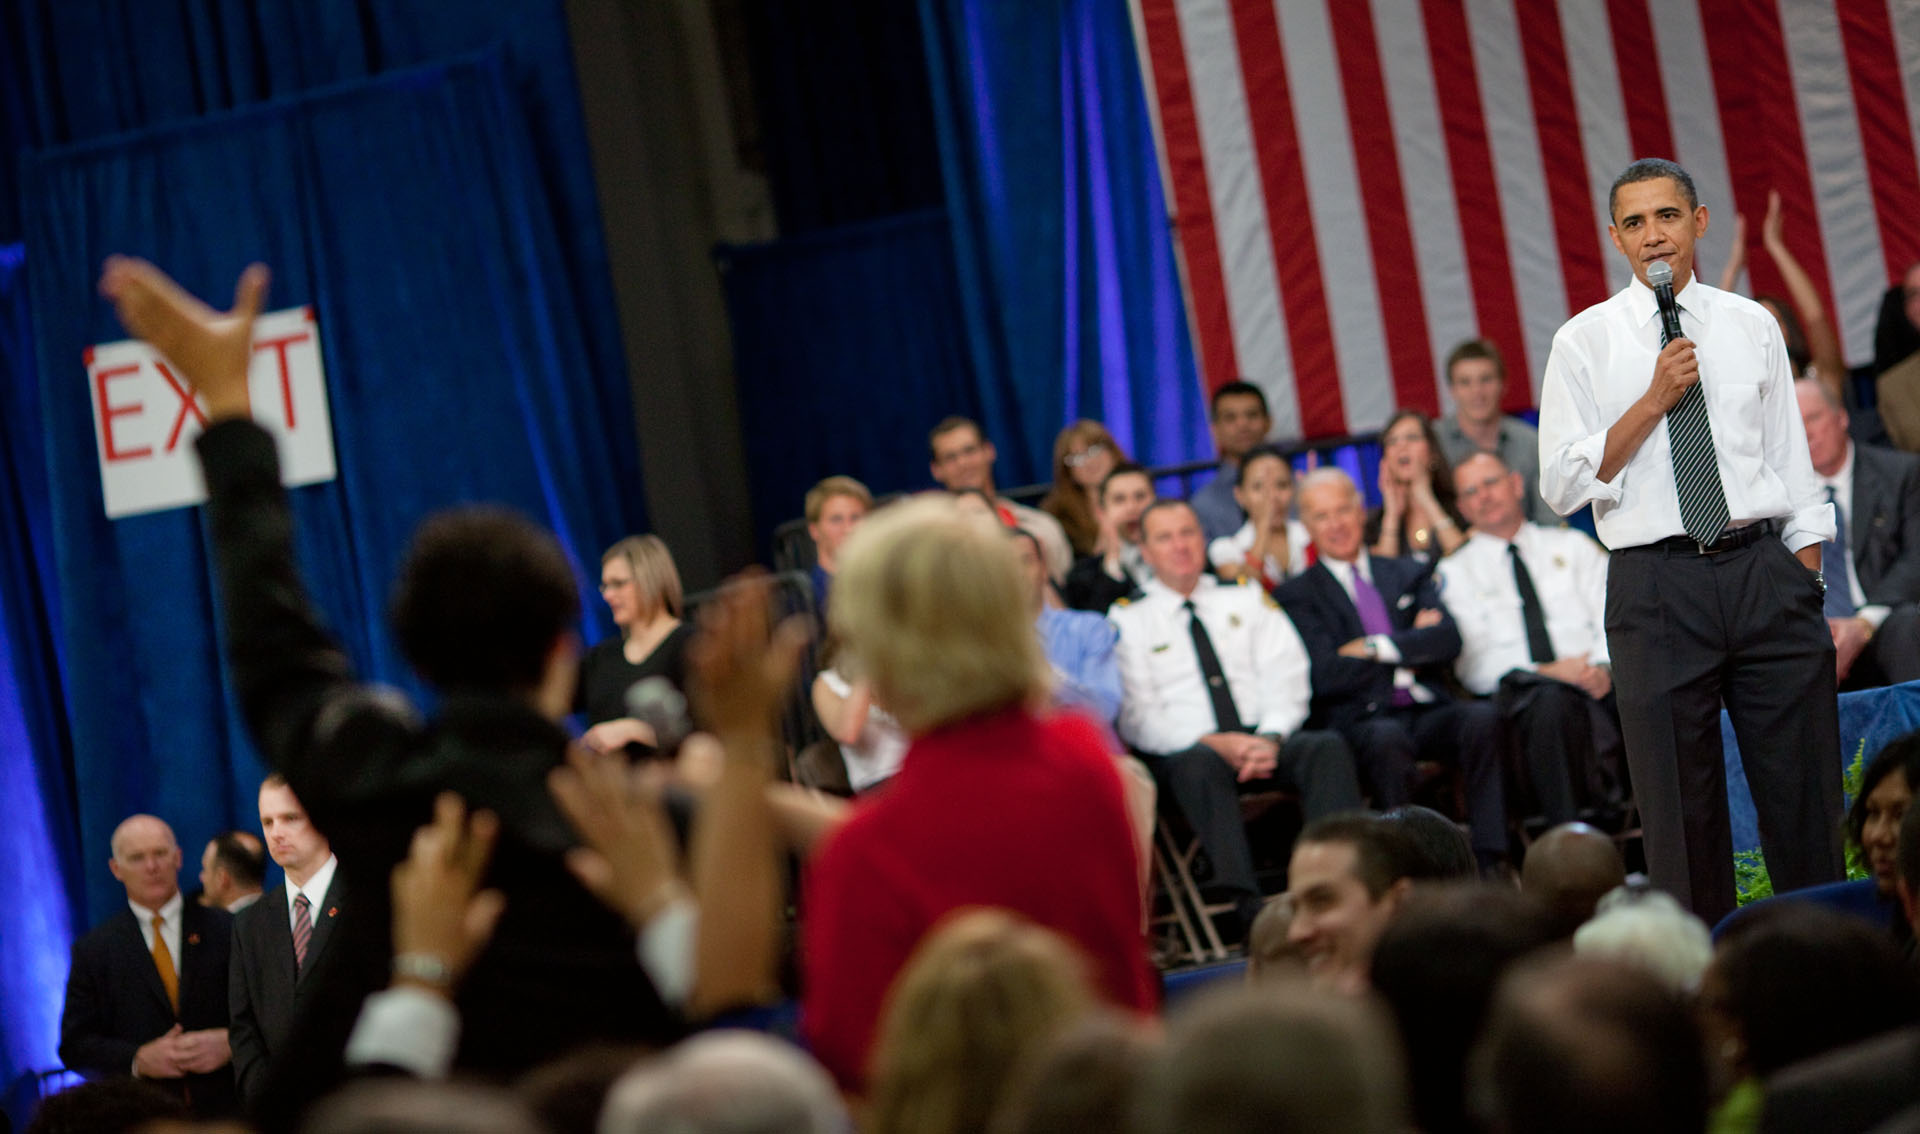 The President Speaks at a Town Hall in Tampa, Florida